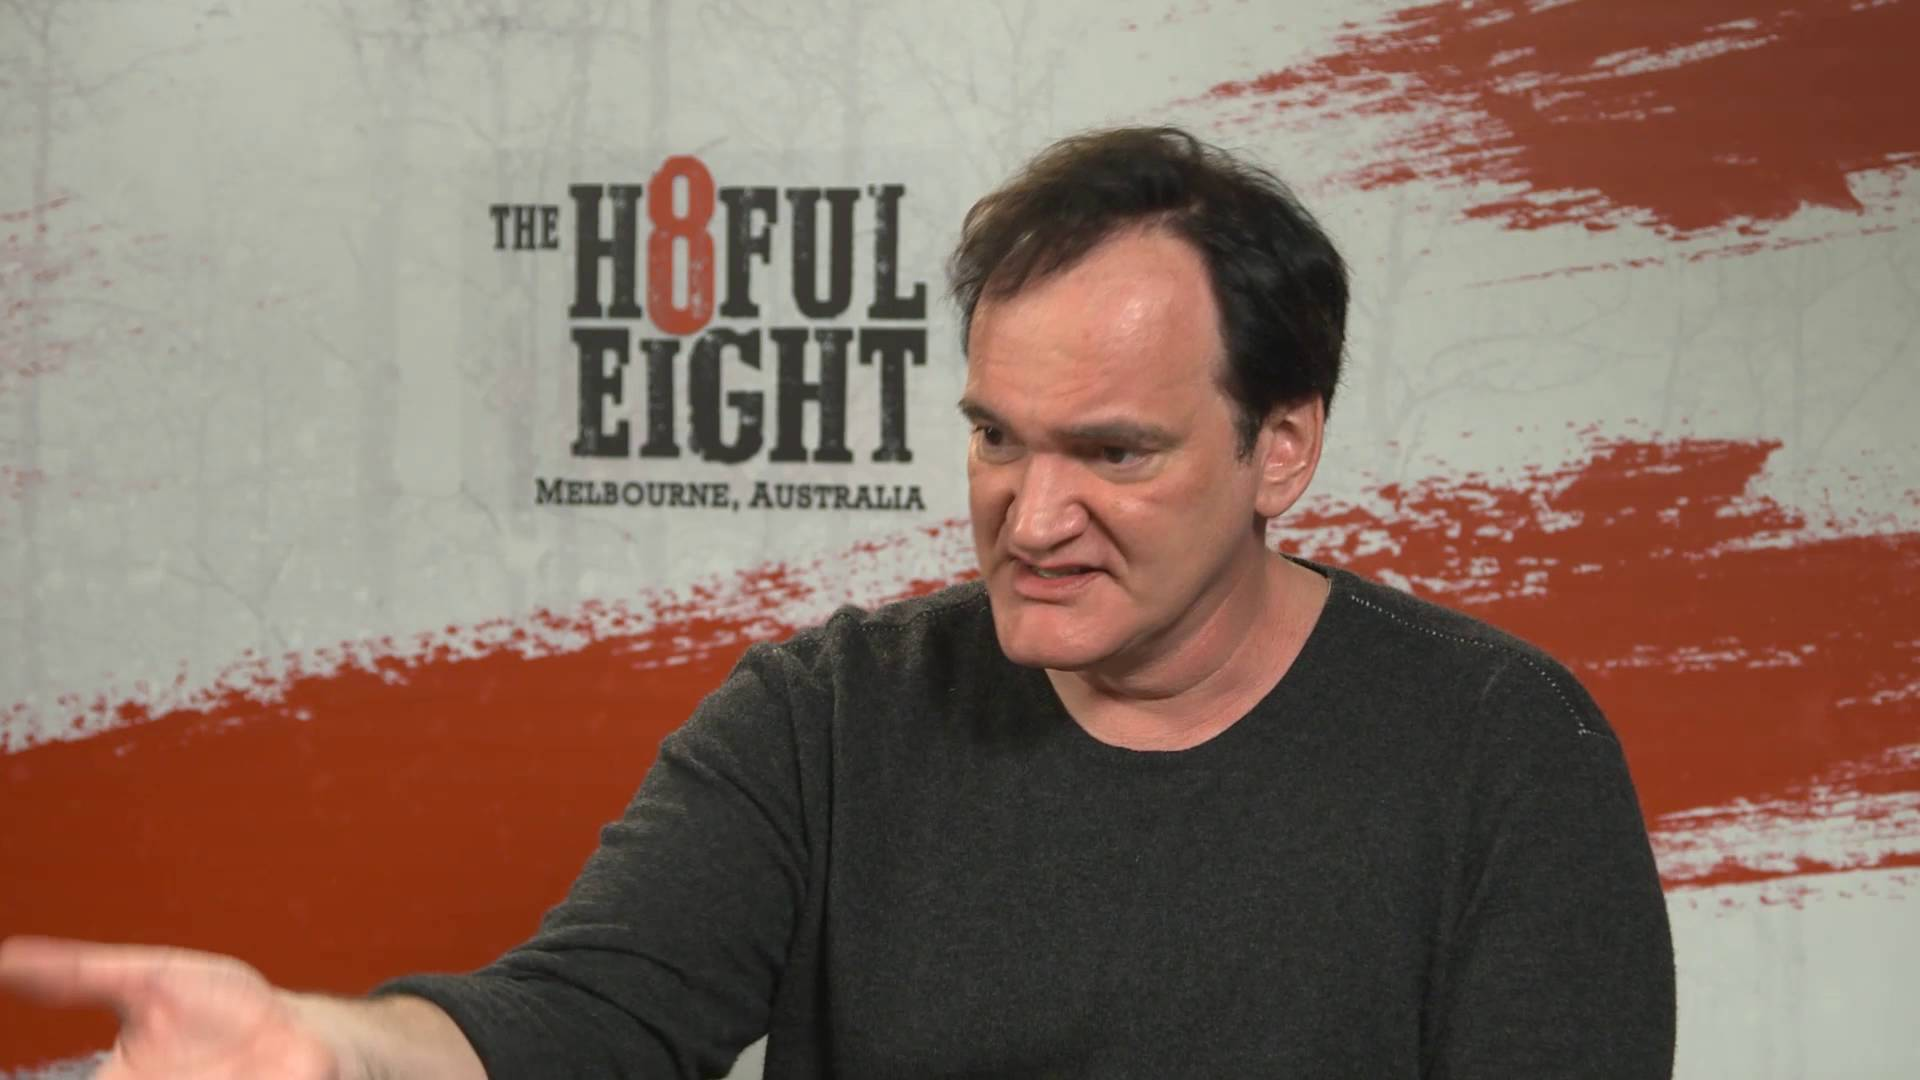 maxresdefault 113 20 Things You Probably Didn't Know About Quentin Tarantino